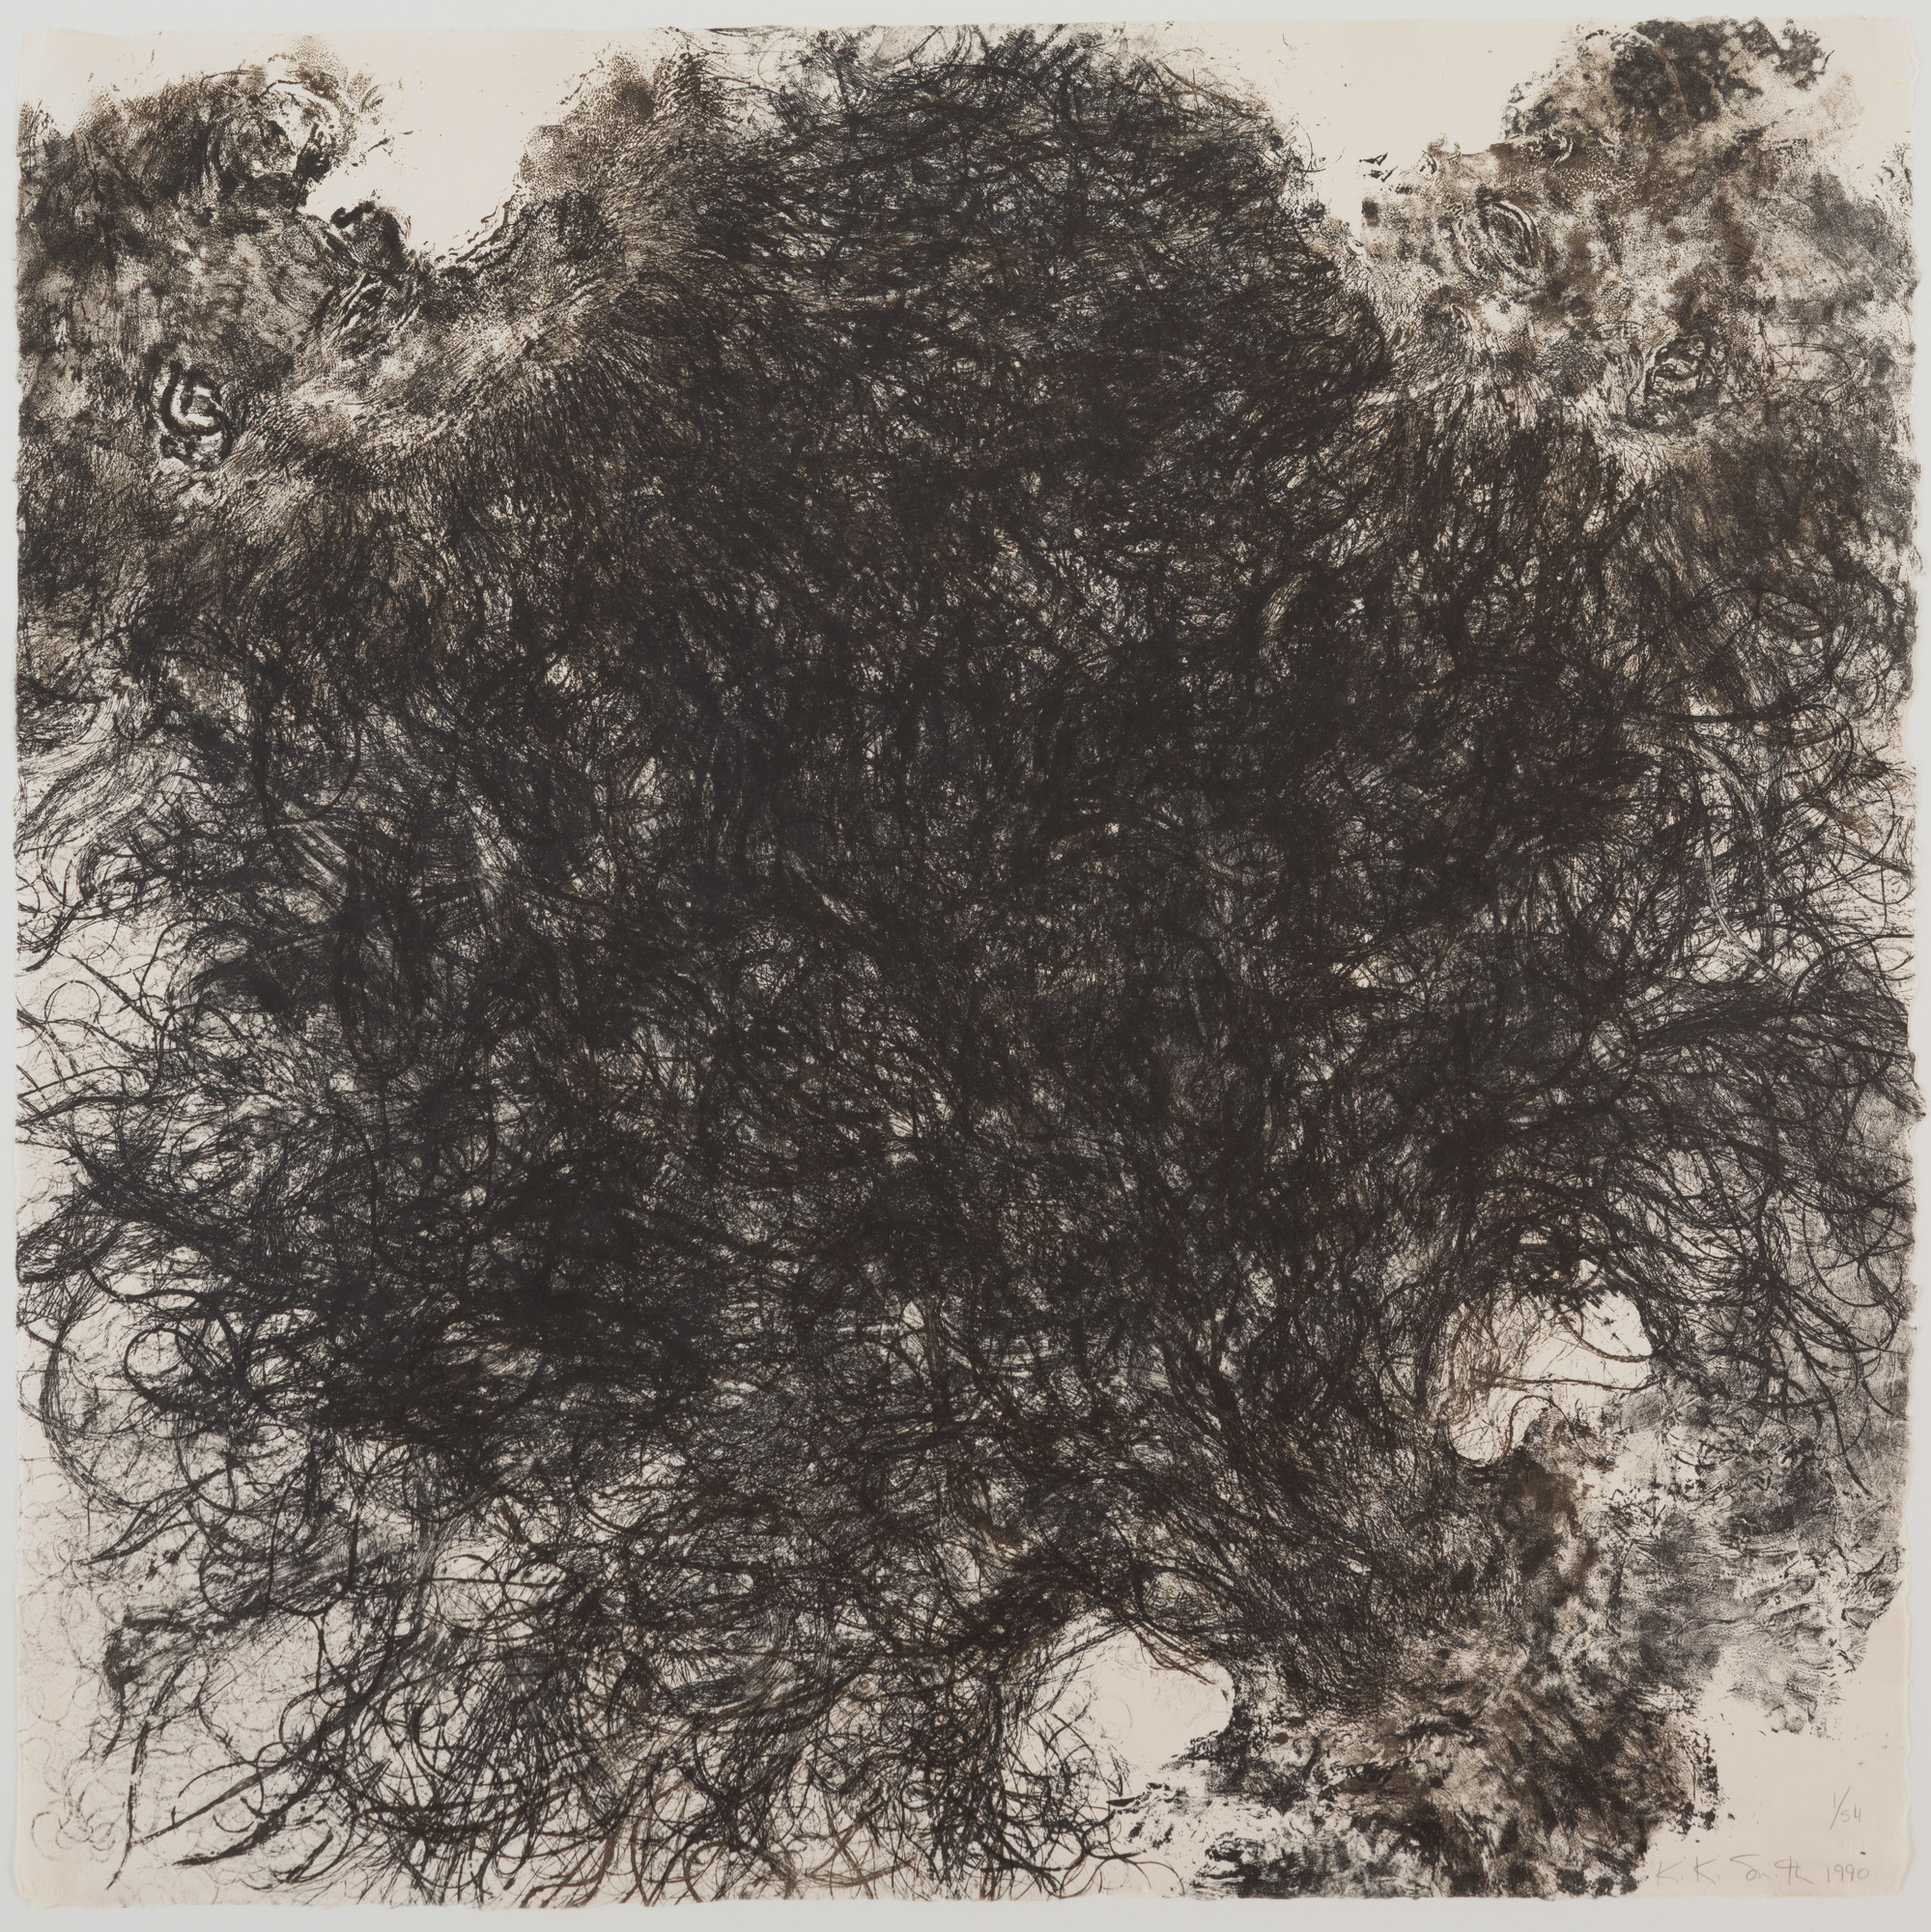 Kiki Smith. Untitled. 1990. Lithograph on handmade Japanese paper, sheet: 35 3⁄4 × 36″ (90.8 × 91.5 cm). Publisher and printer: Universal Limited Art Editions, West Islip, New York. Edition: 54. The Museum of Modern Art. Gift of Emily Fisher Landau